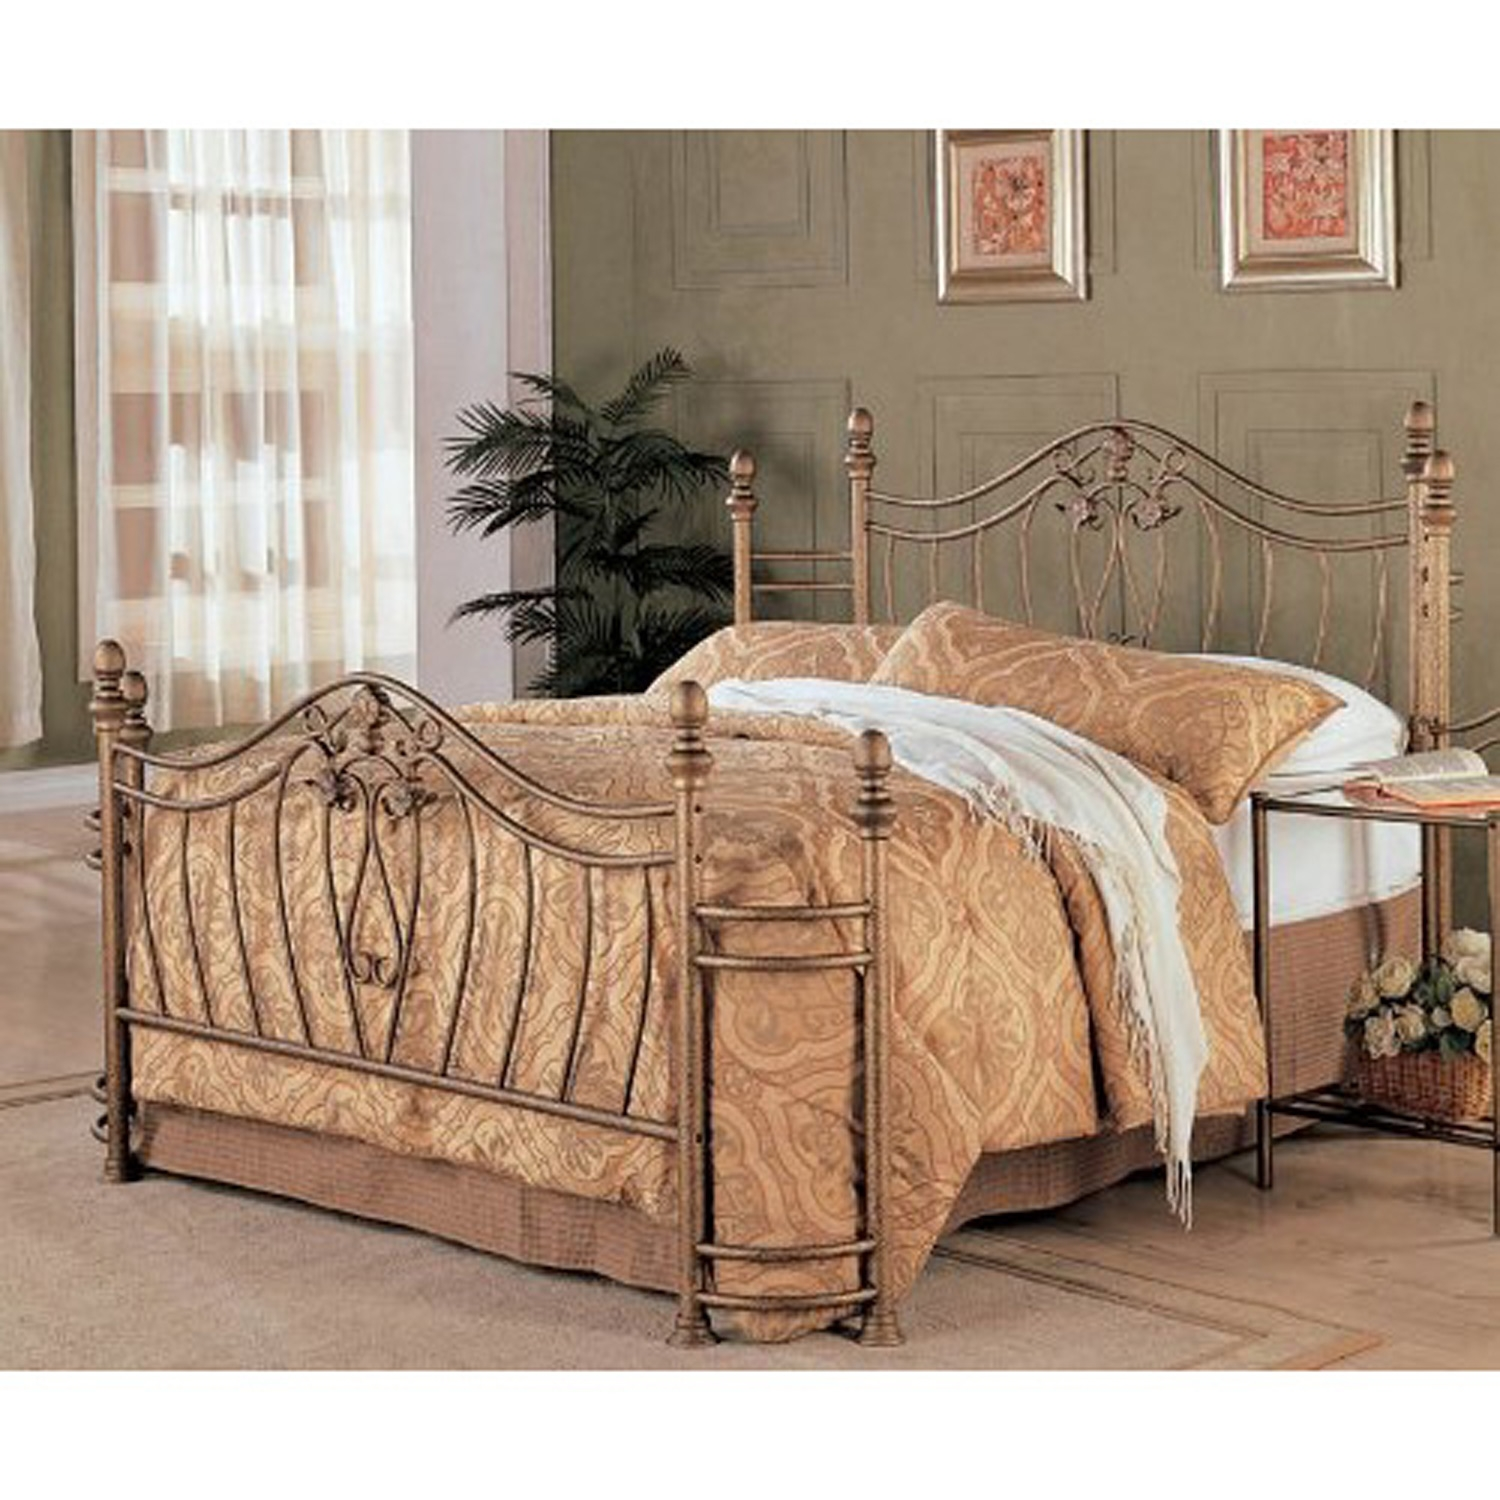 baxton headboard chic alanna with gold beige size shabby queen black sea metal bed tufted studio platform